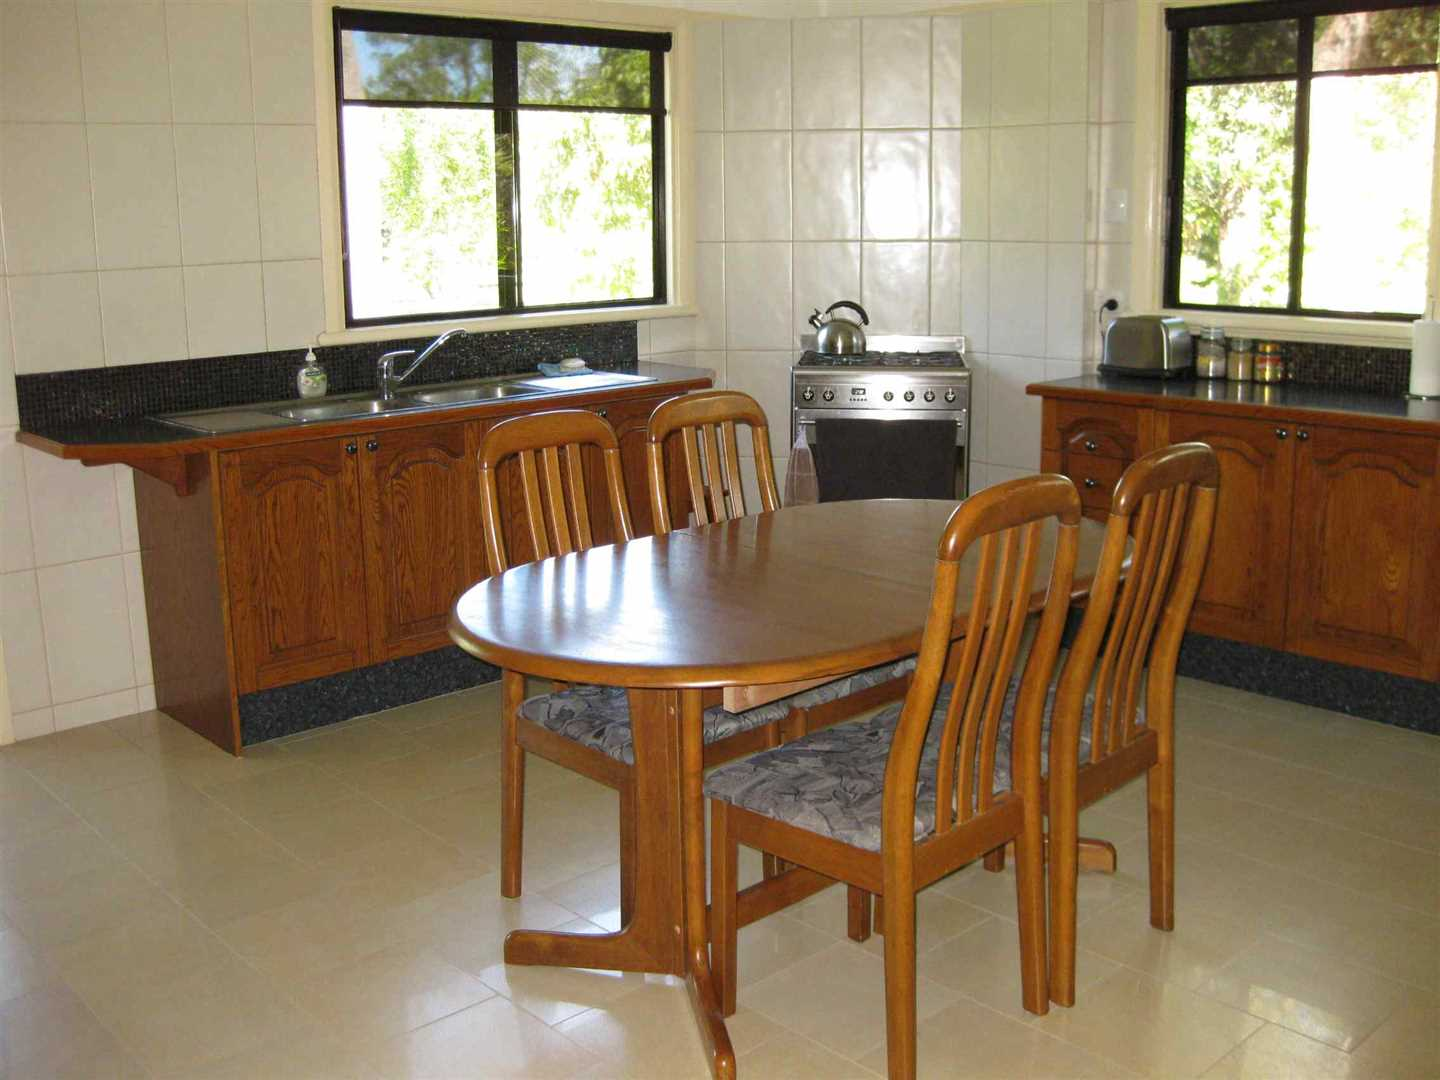 Inside view of part of home showing part of dining area and kitchen, photo 1